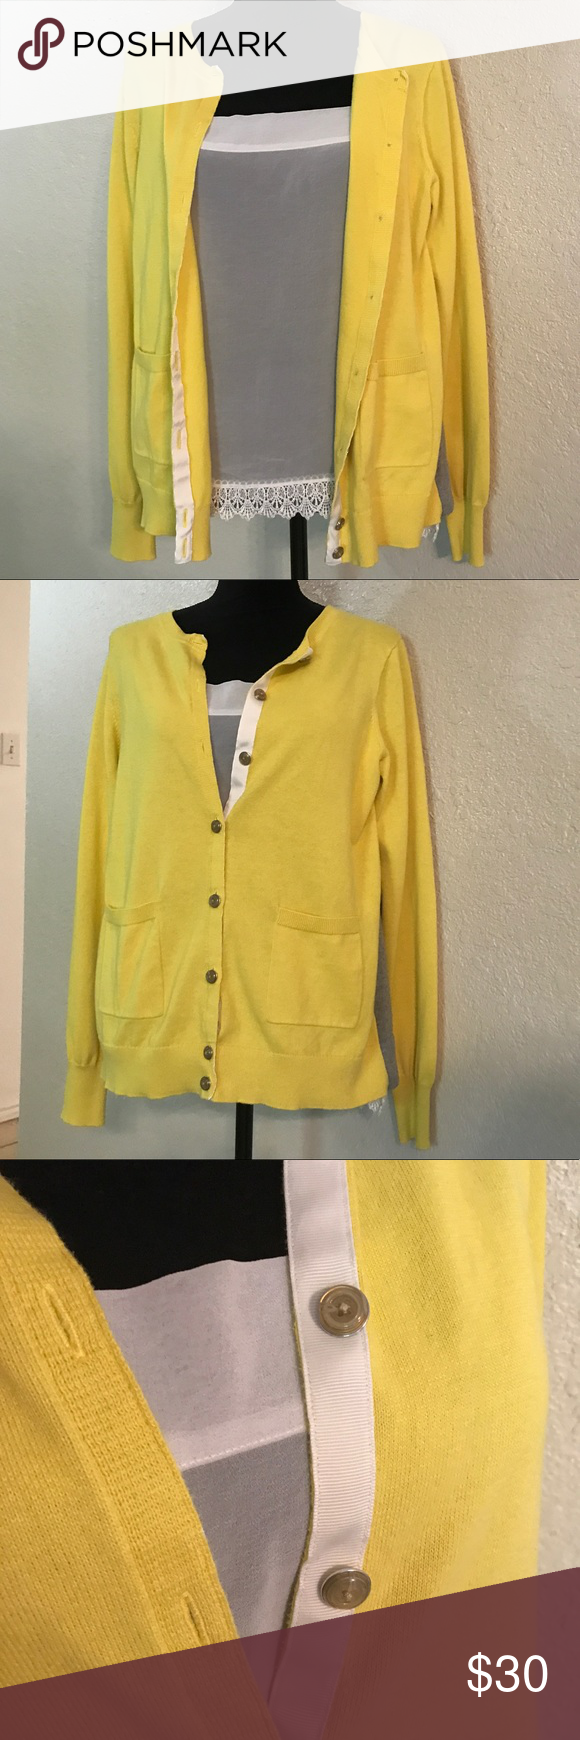 CAbi cardigan with cami Adorable yellow and gray cardigan with ...